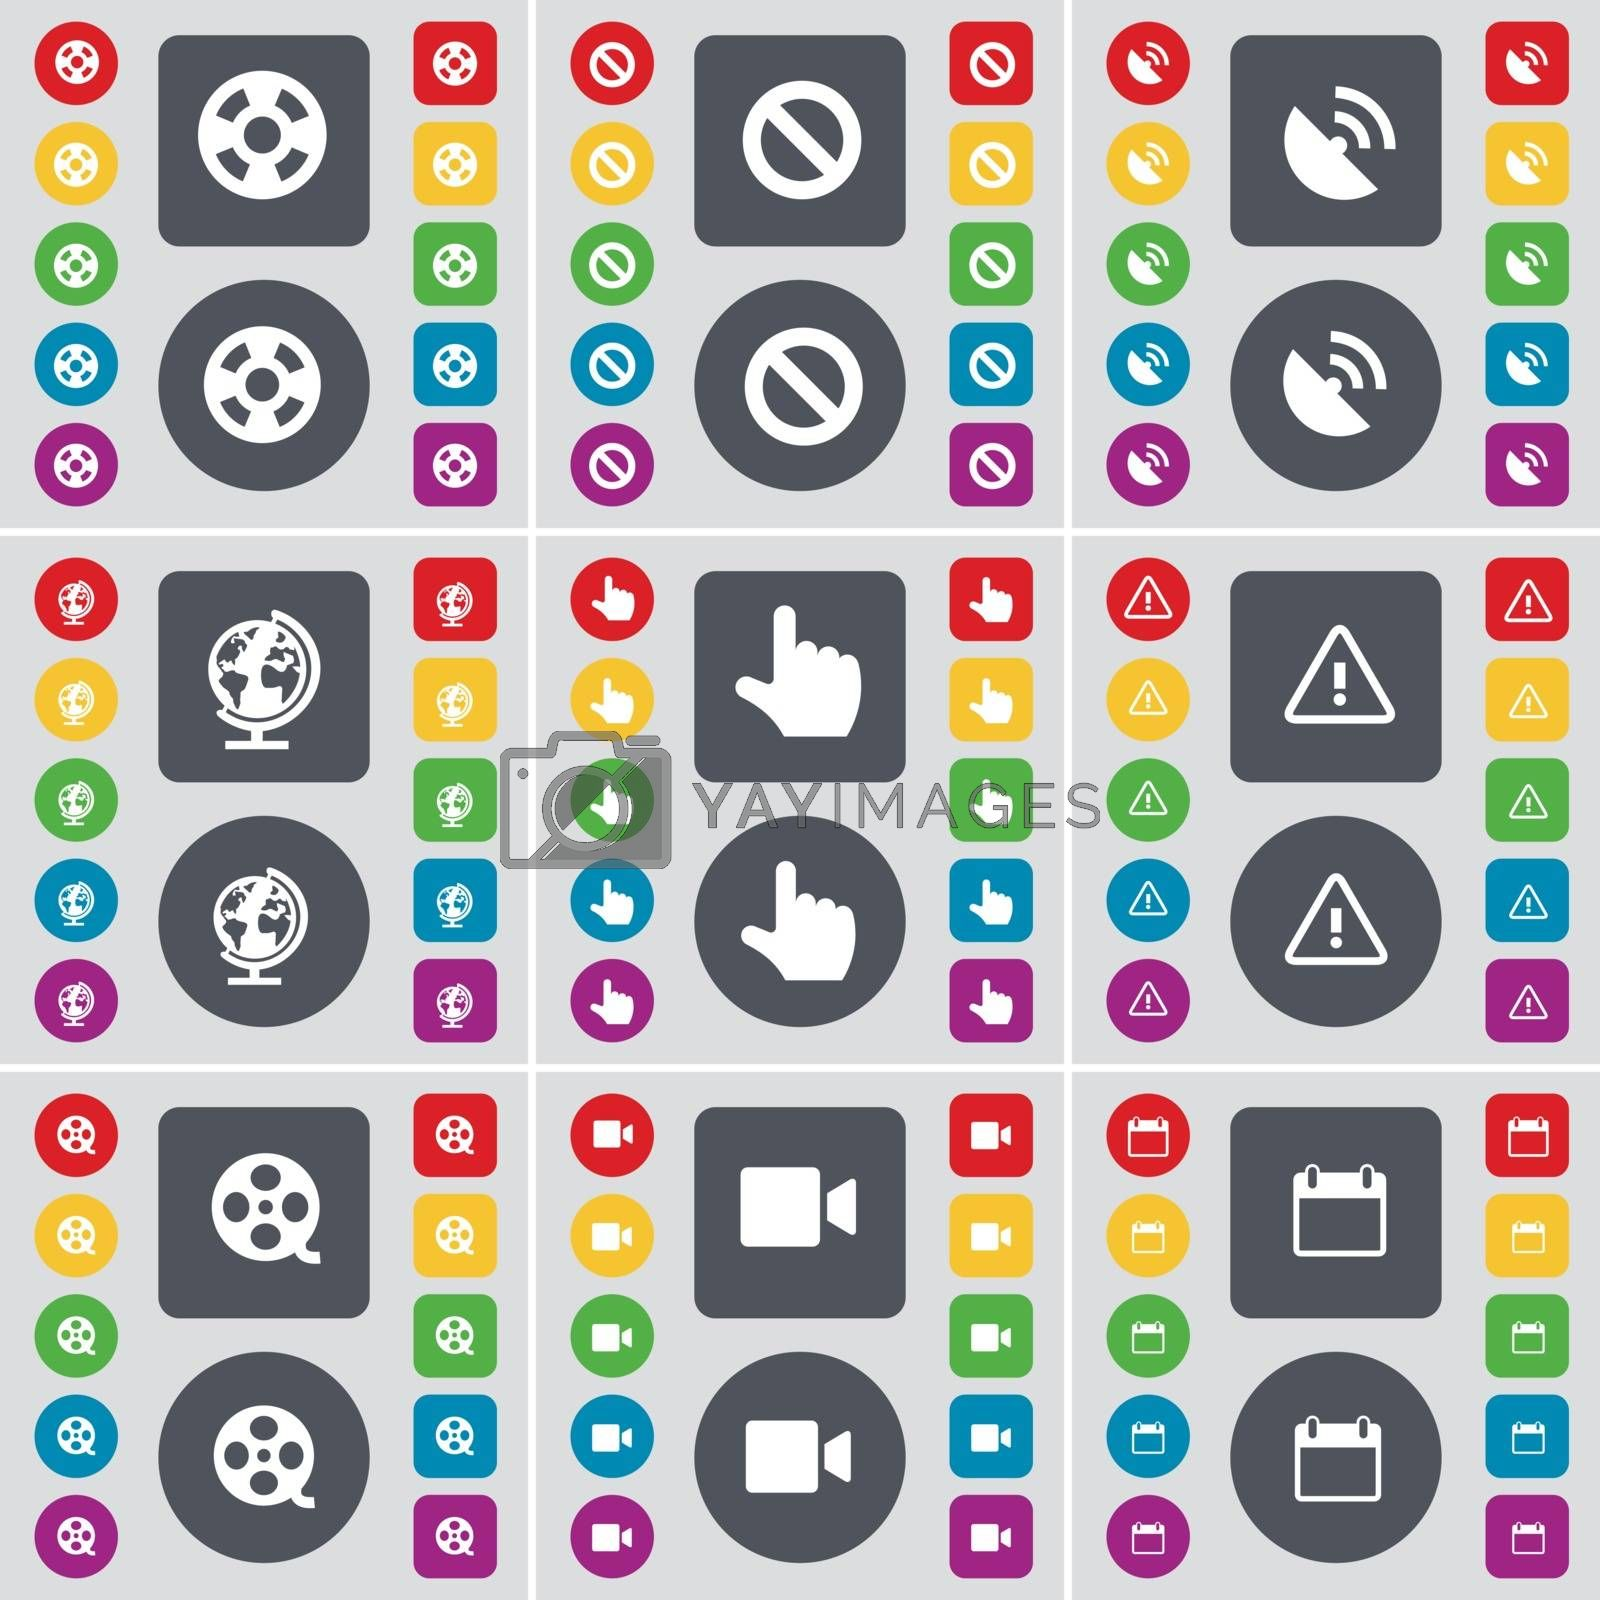 Royalty free image of Videotape, Stop, Satellite dish, Globe, Hand, Warning, Videotape, Film camera, Calendar icon symbol. A large set of flat, colored buttons for your design. Vector by serhii_lohvyniuk